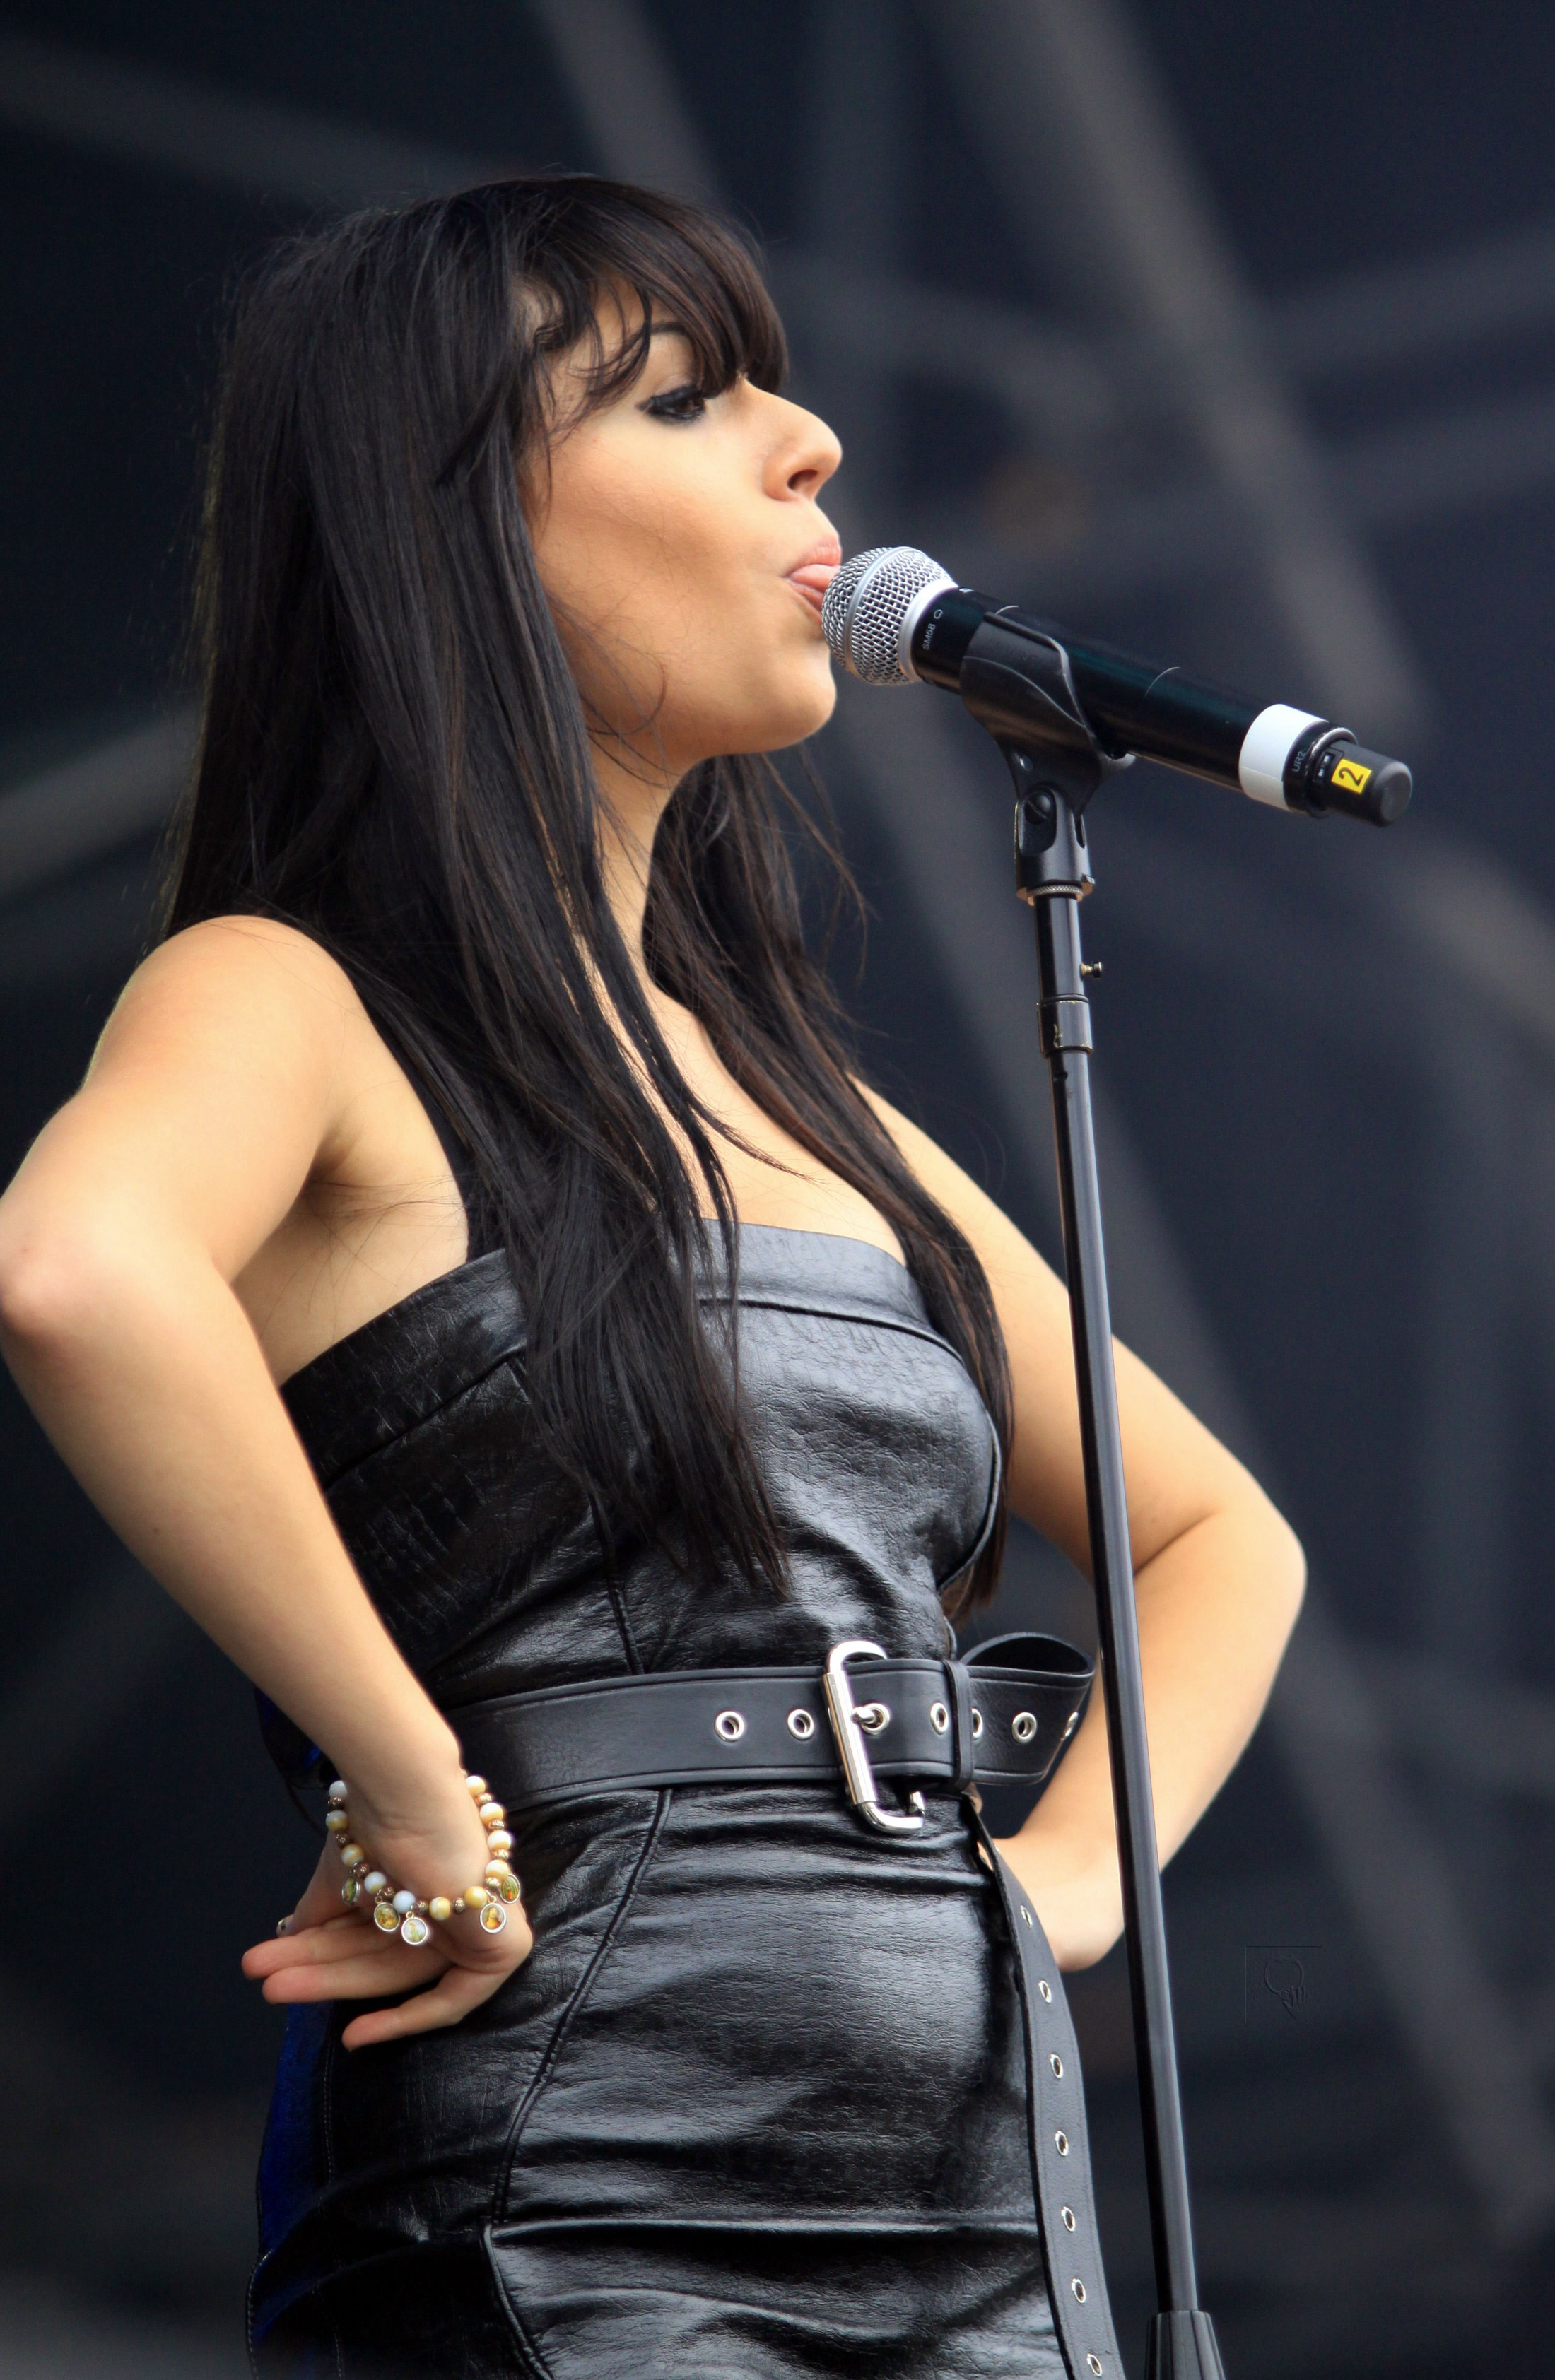 gabriella-cilmi-perform-in-the-park-in-leeds-01 - GotCeleb